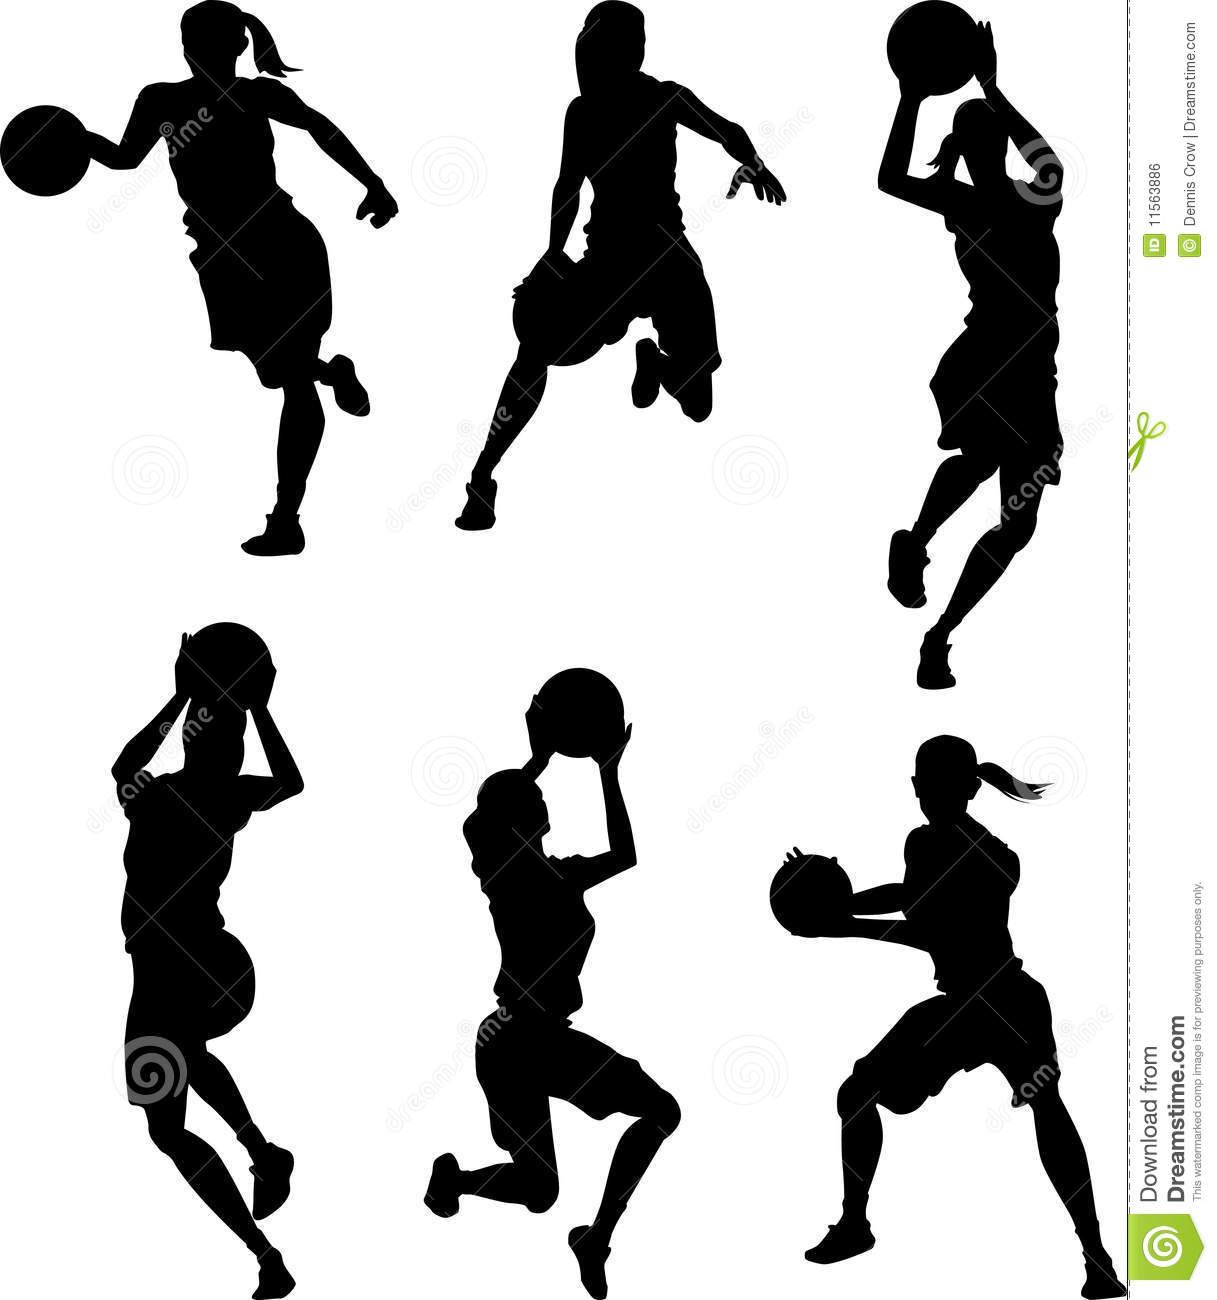 Basketball Female Silhouettes - Download From Over 28 Million High Quality  Stock Photos 0b57589885